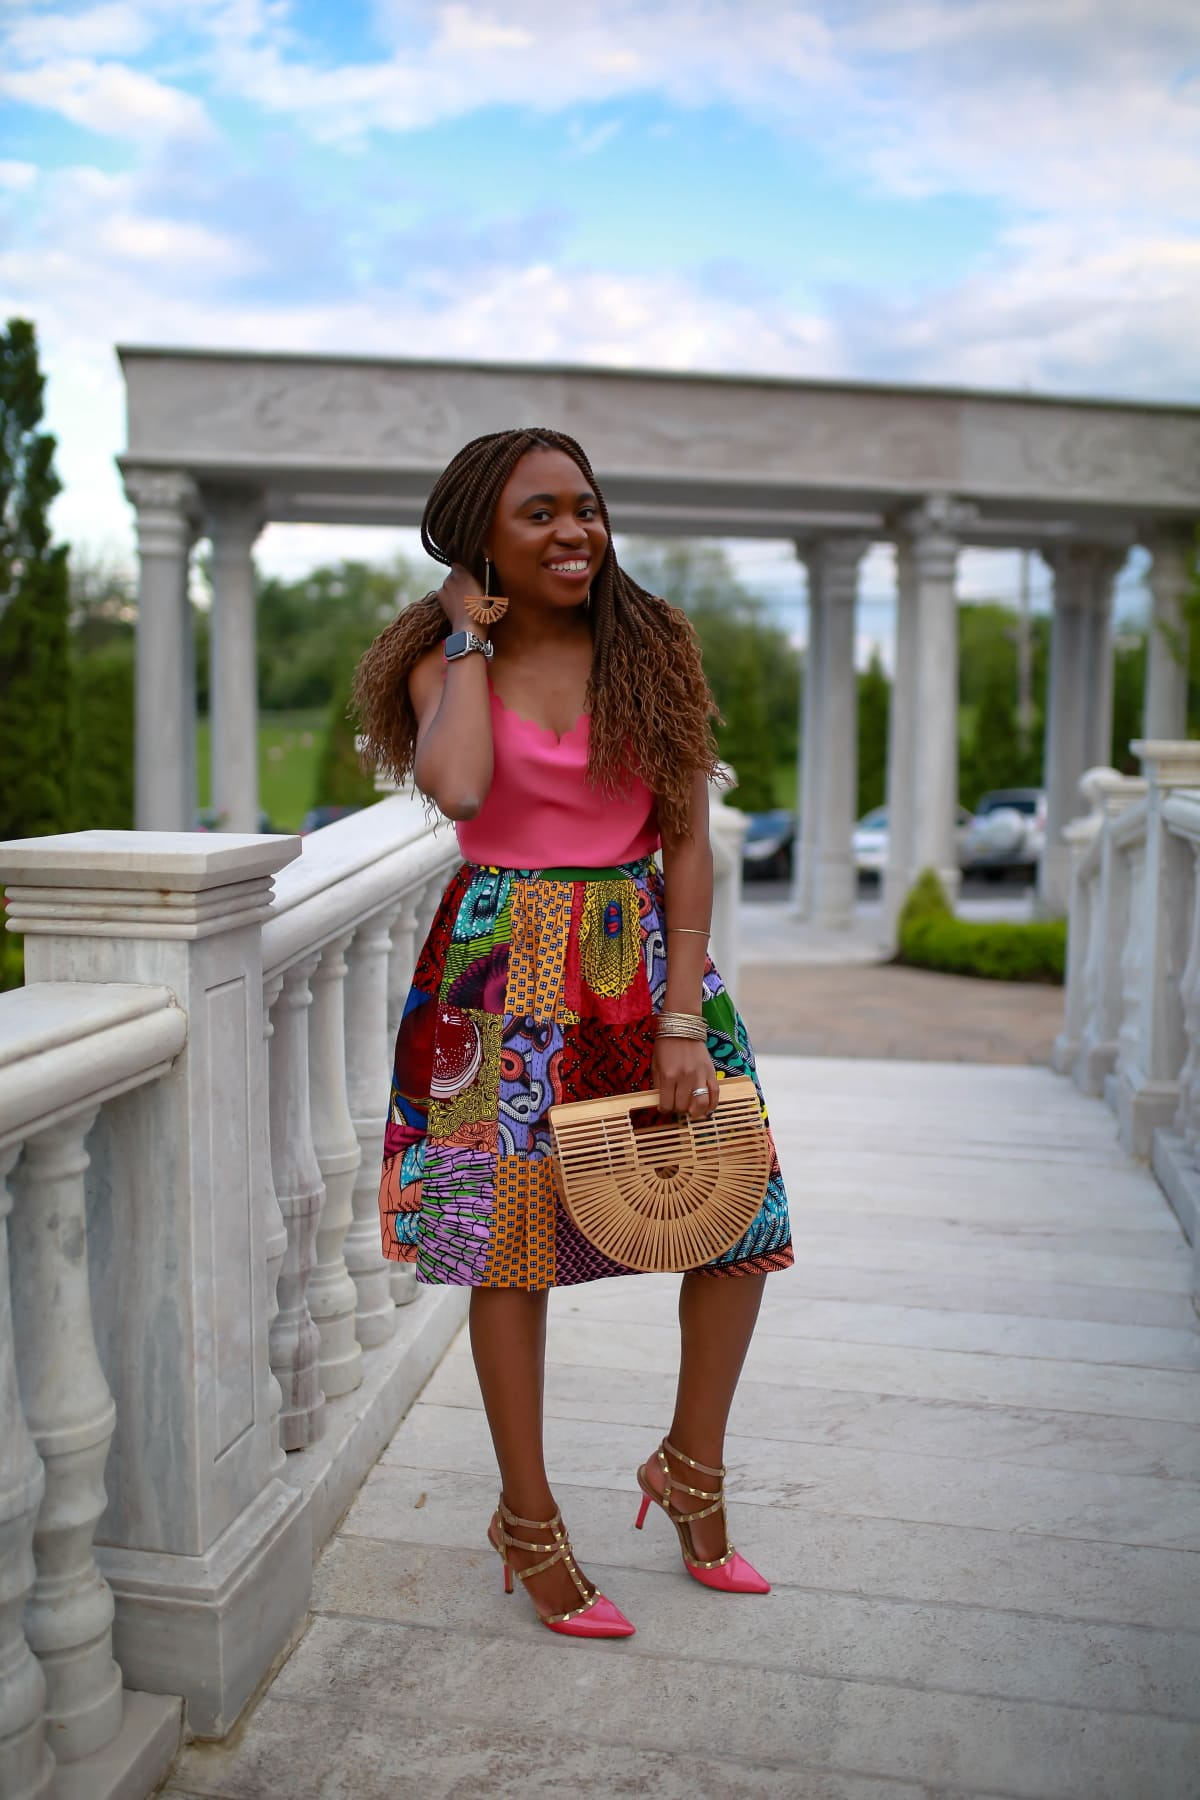 Finally found a stylish African print skirt that is affordable and still in stock. This authentic handmade ankara skirt will be my go-to this year. And Lord knows how long it took to sew each piece of wax print together before making this skirt. An Amazon find for sure!